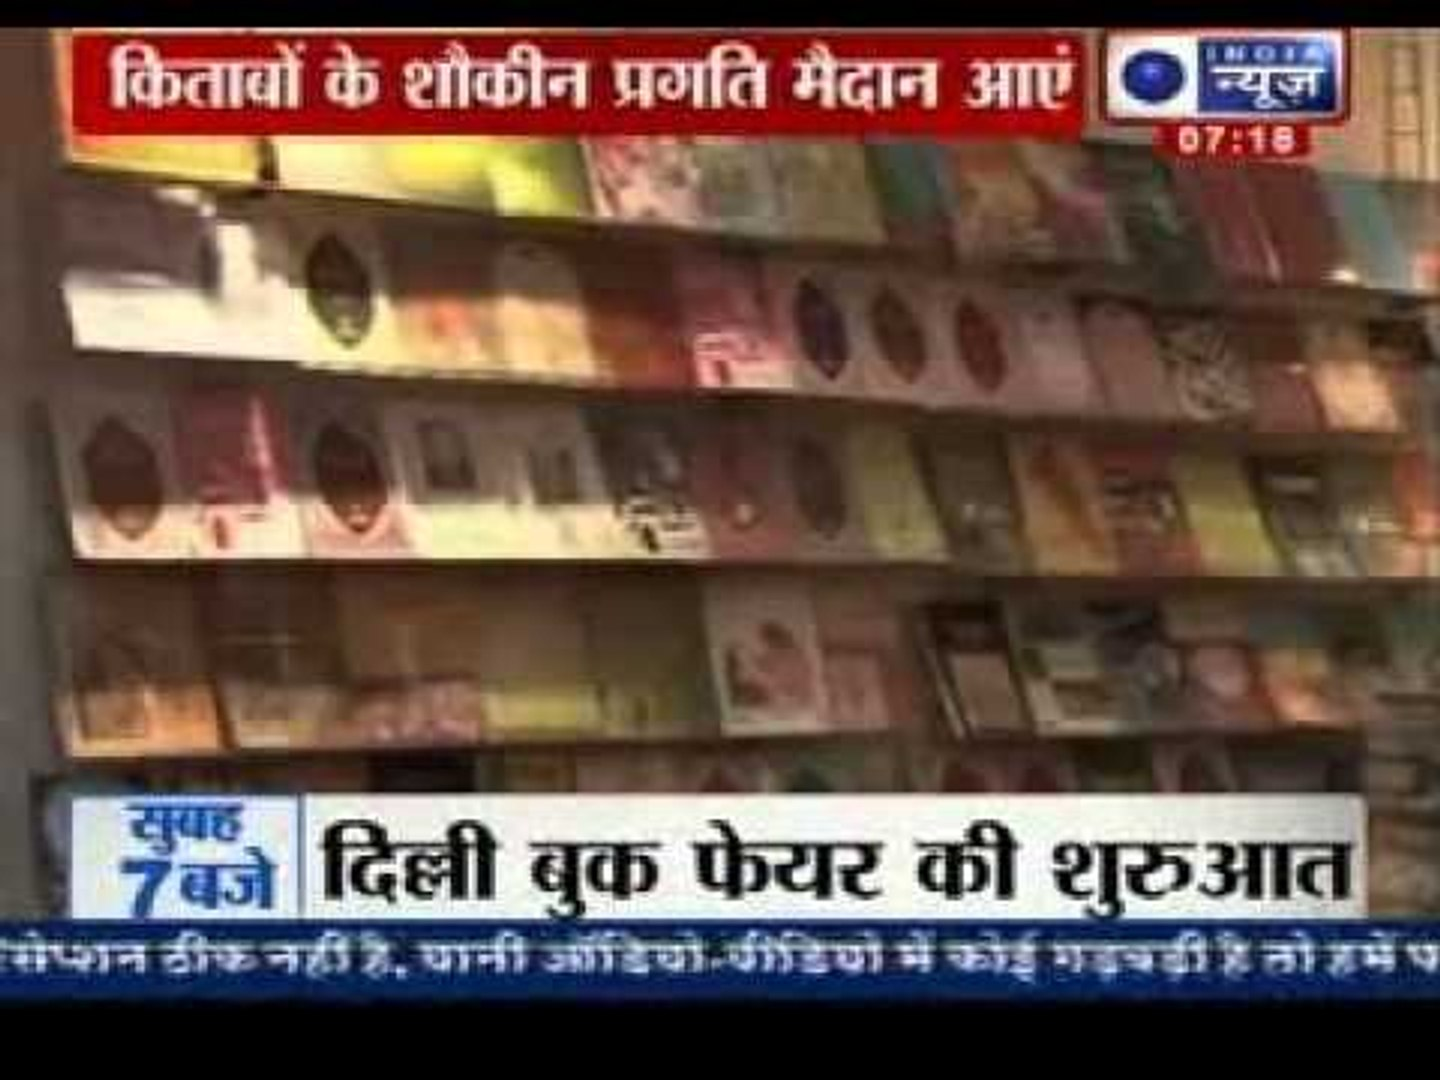 India News : Delhi Book Fair begins